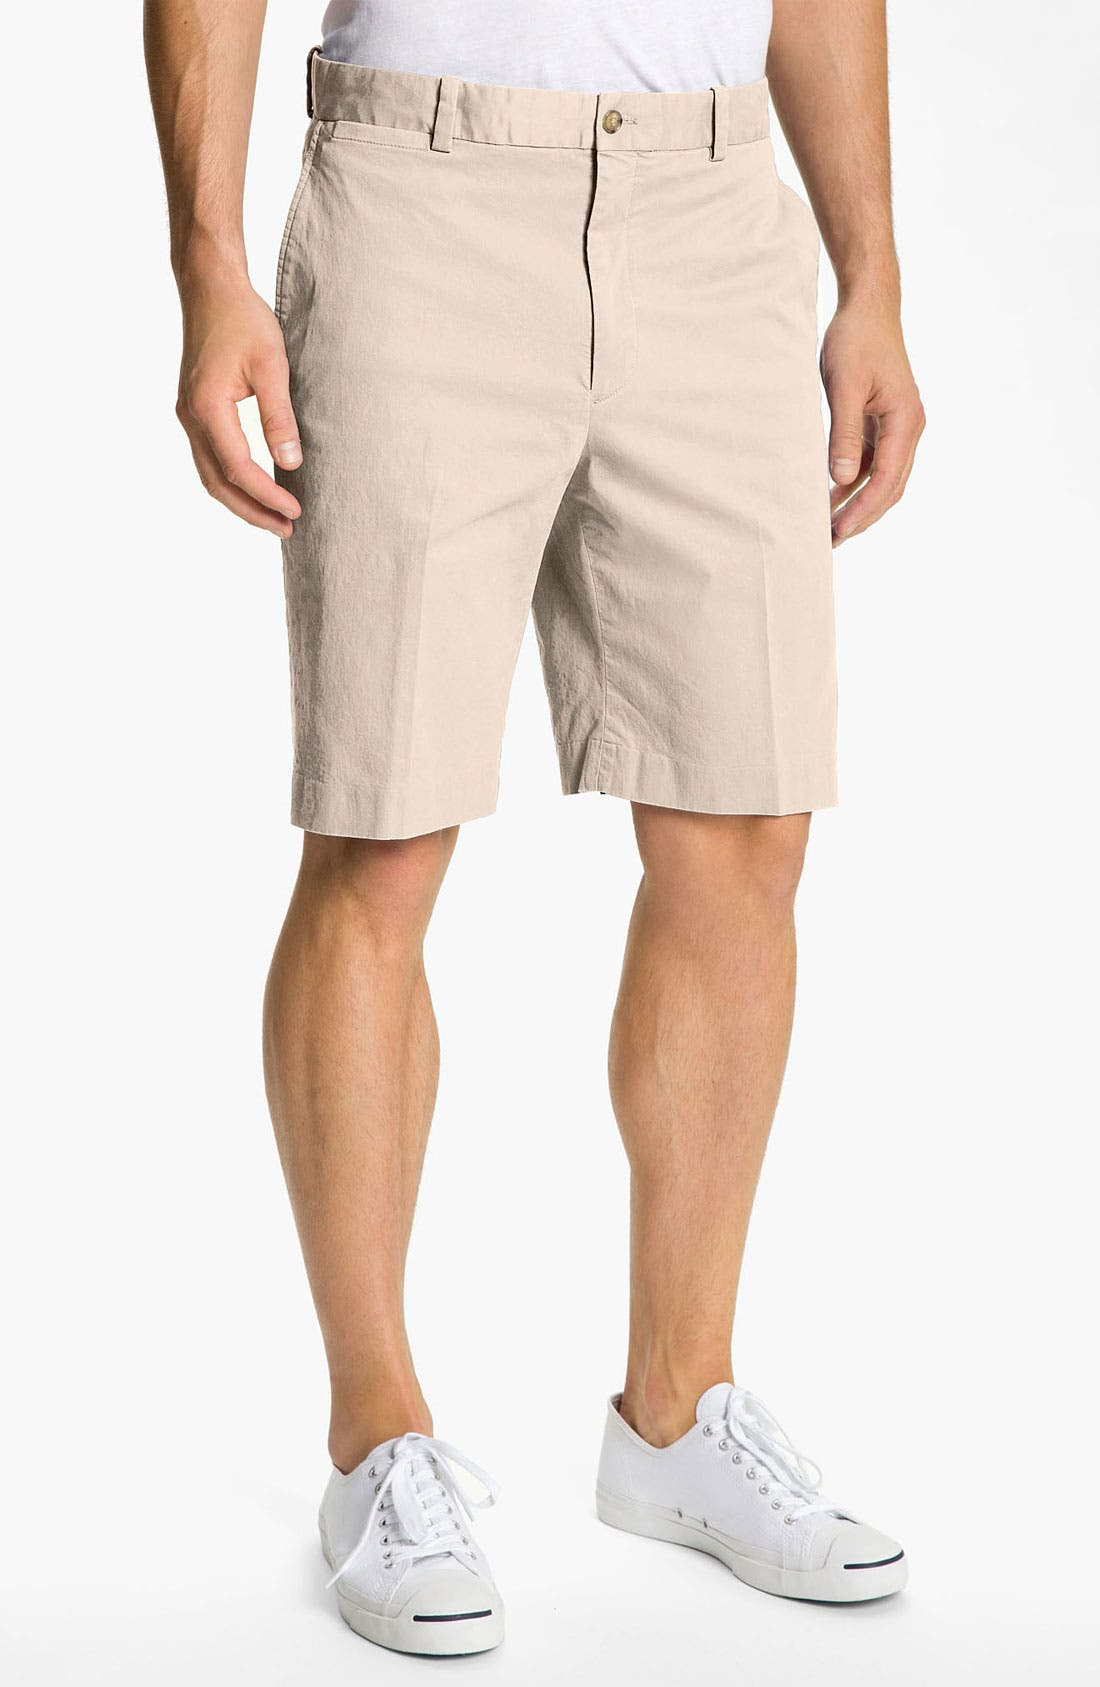 Alternate Image 1 Selected - Bobby Jones Flat Front Golf Shorts